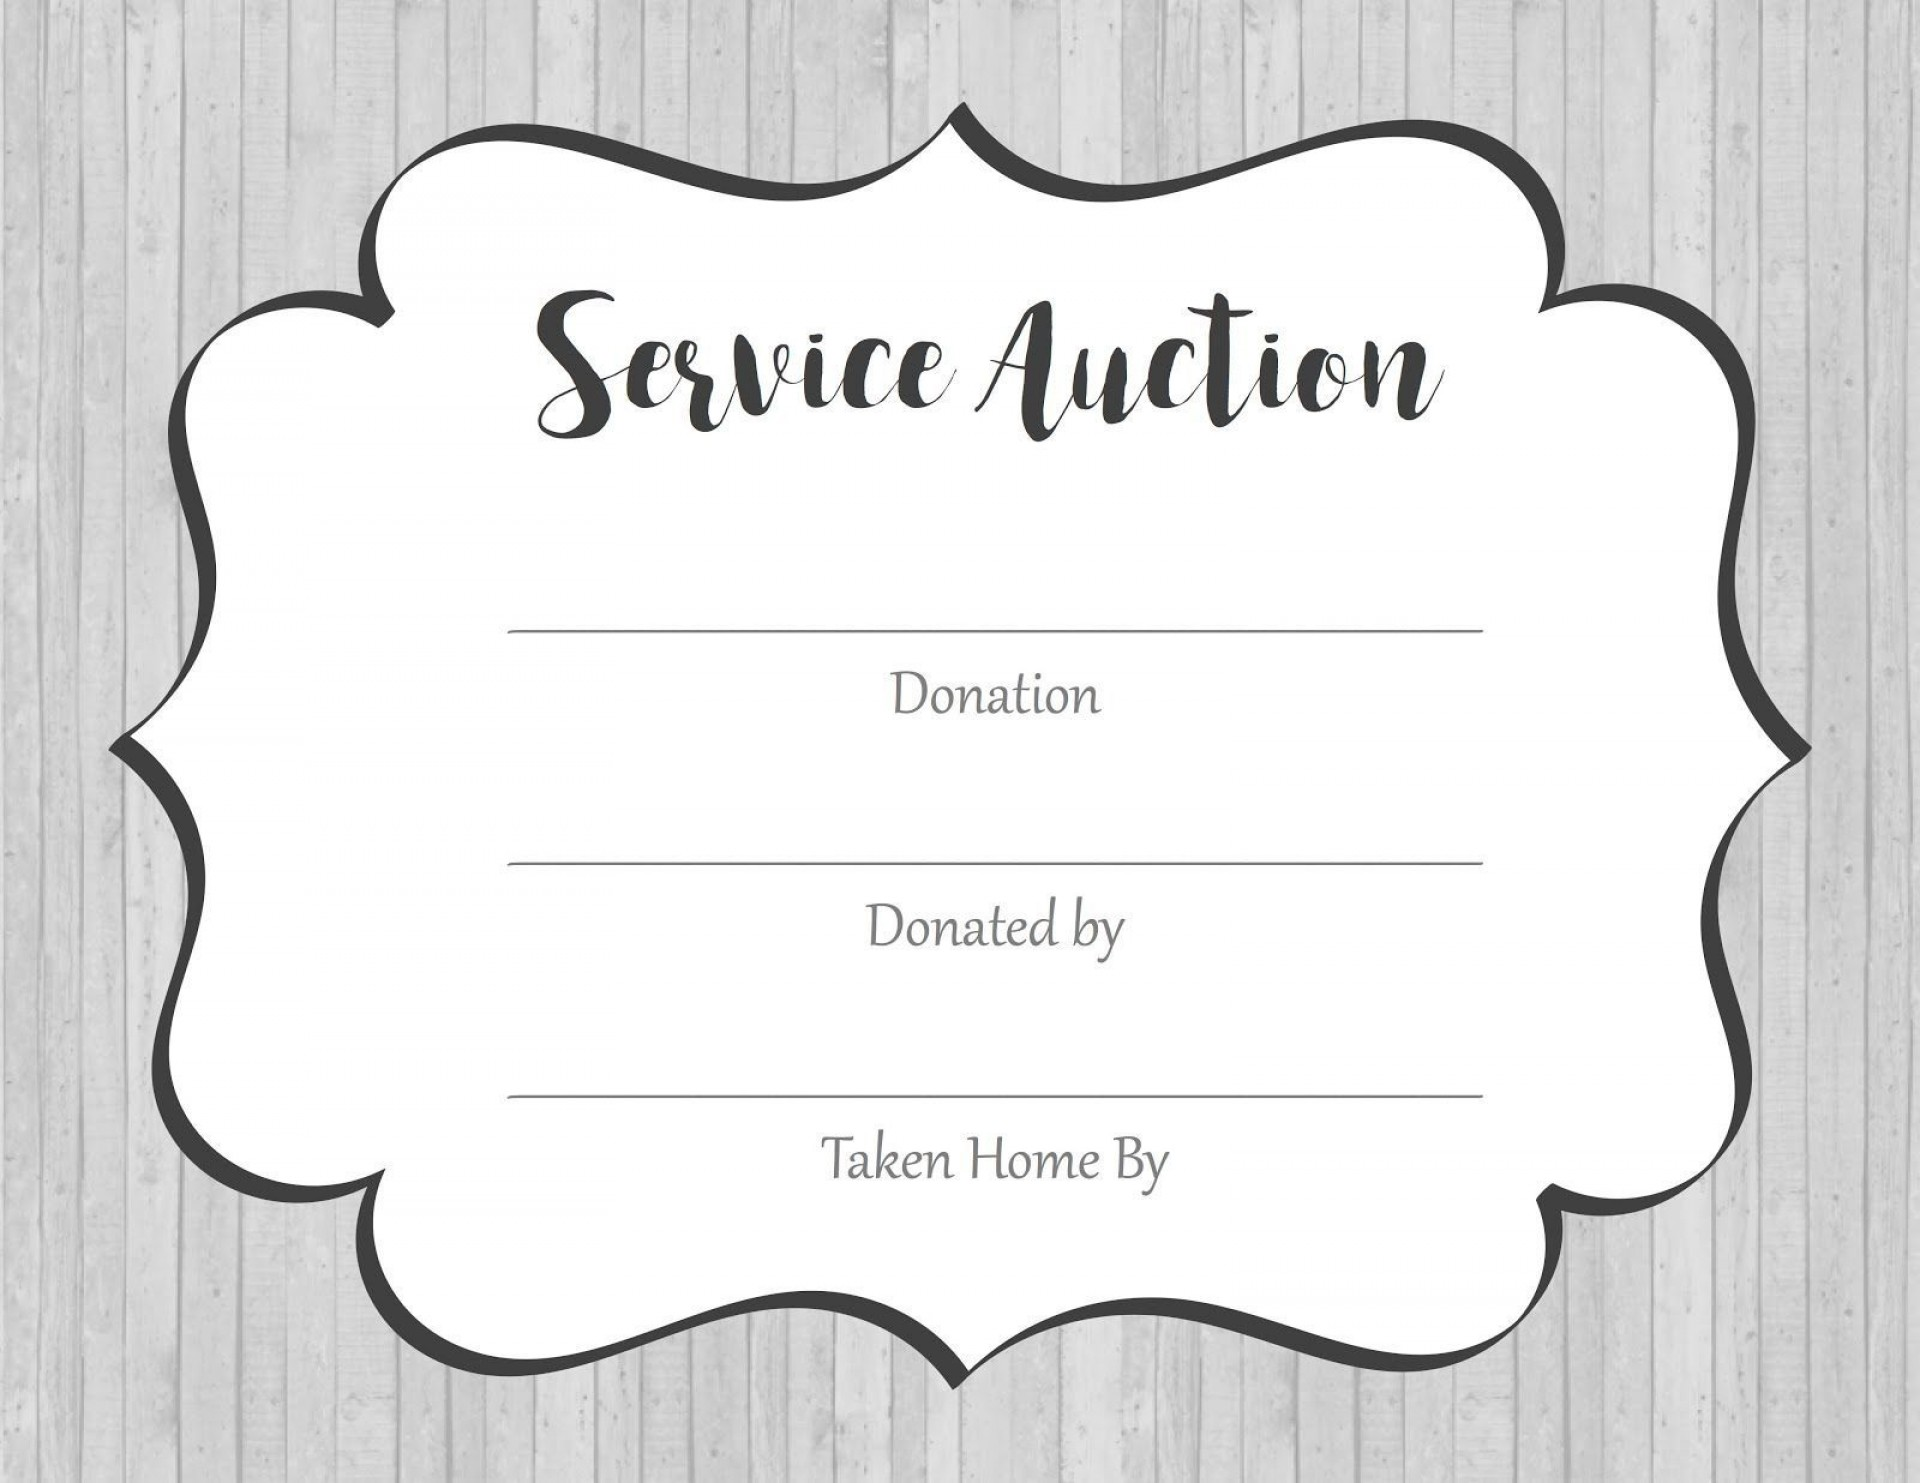 002 Marvelou Silent Auction Donation Certificate Template High Def 1920